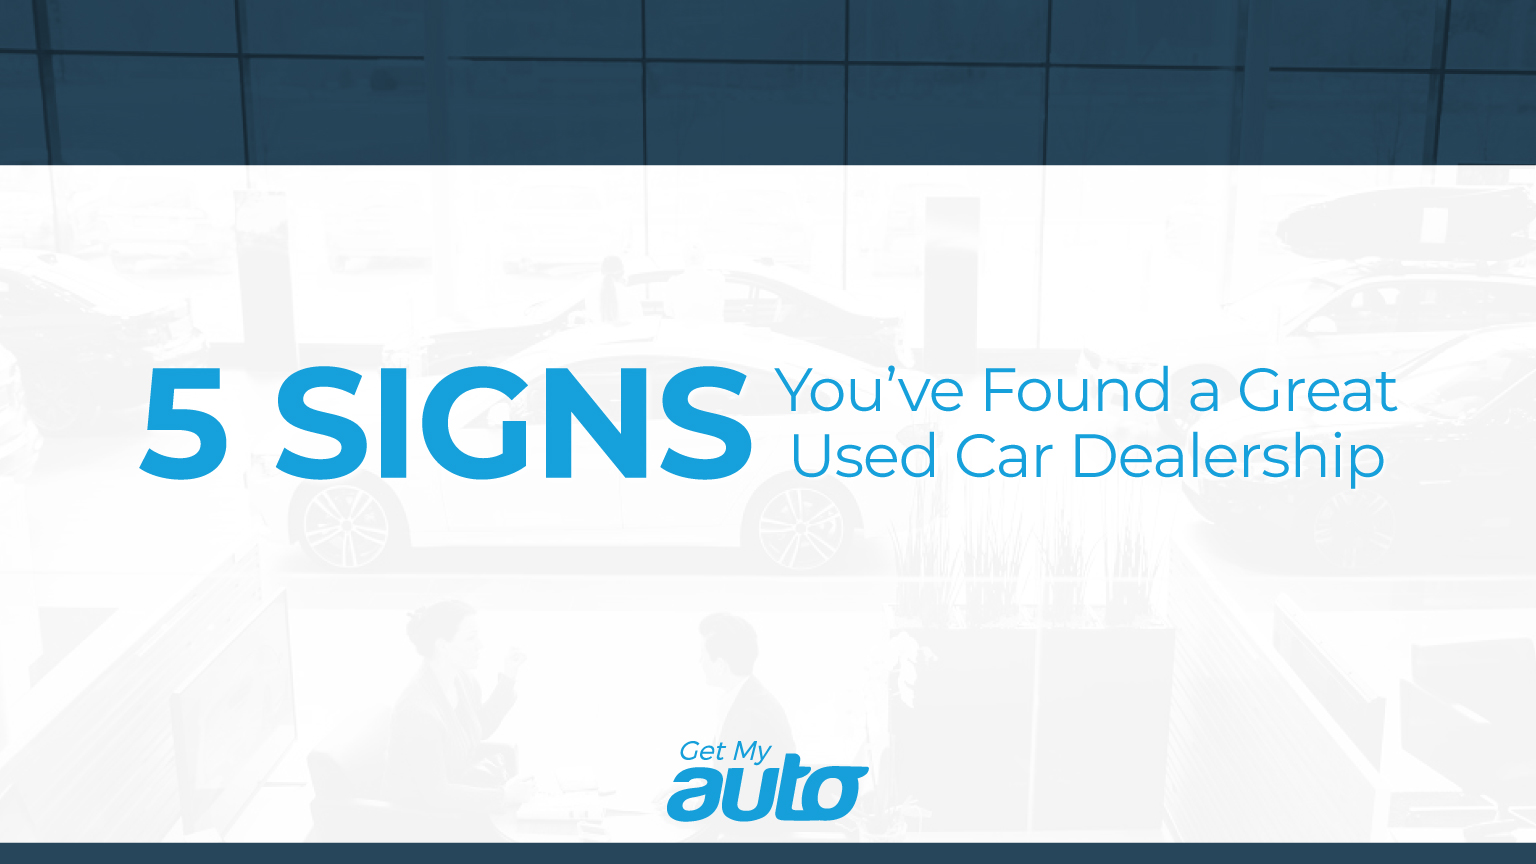 5 Signs You've Found a Great Used Car Dealership GetMyAuto